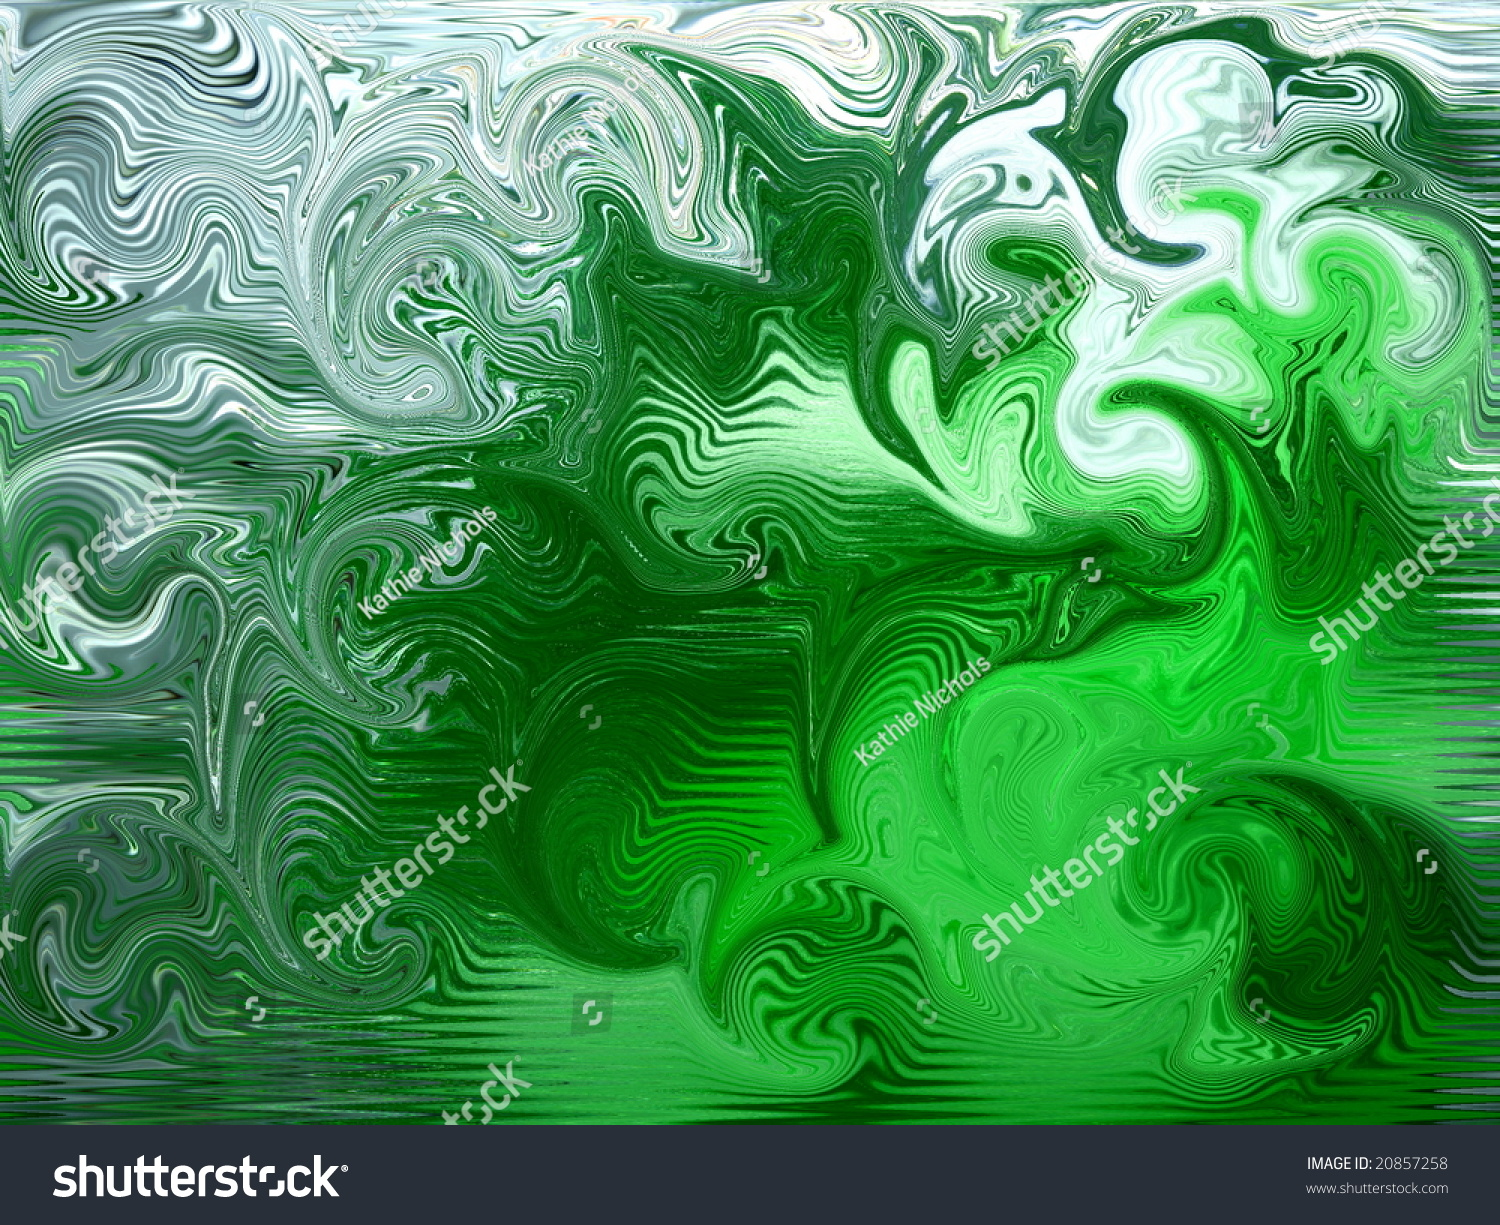 Green And White Swirl Background Stock Photo 20857258 ... Green And White Swirl Backgrounds